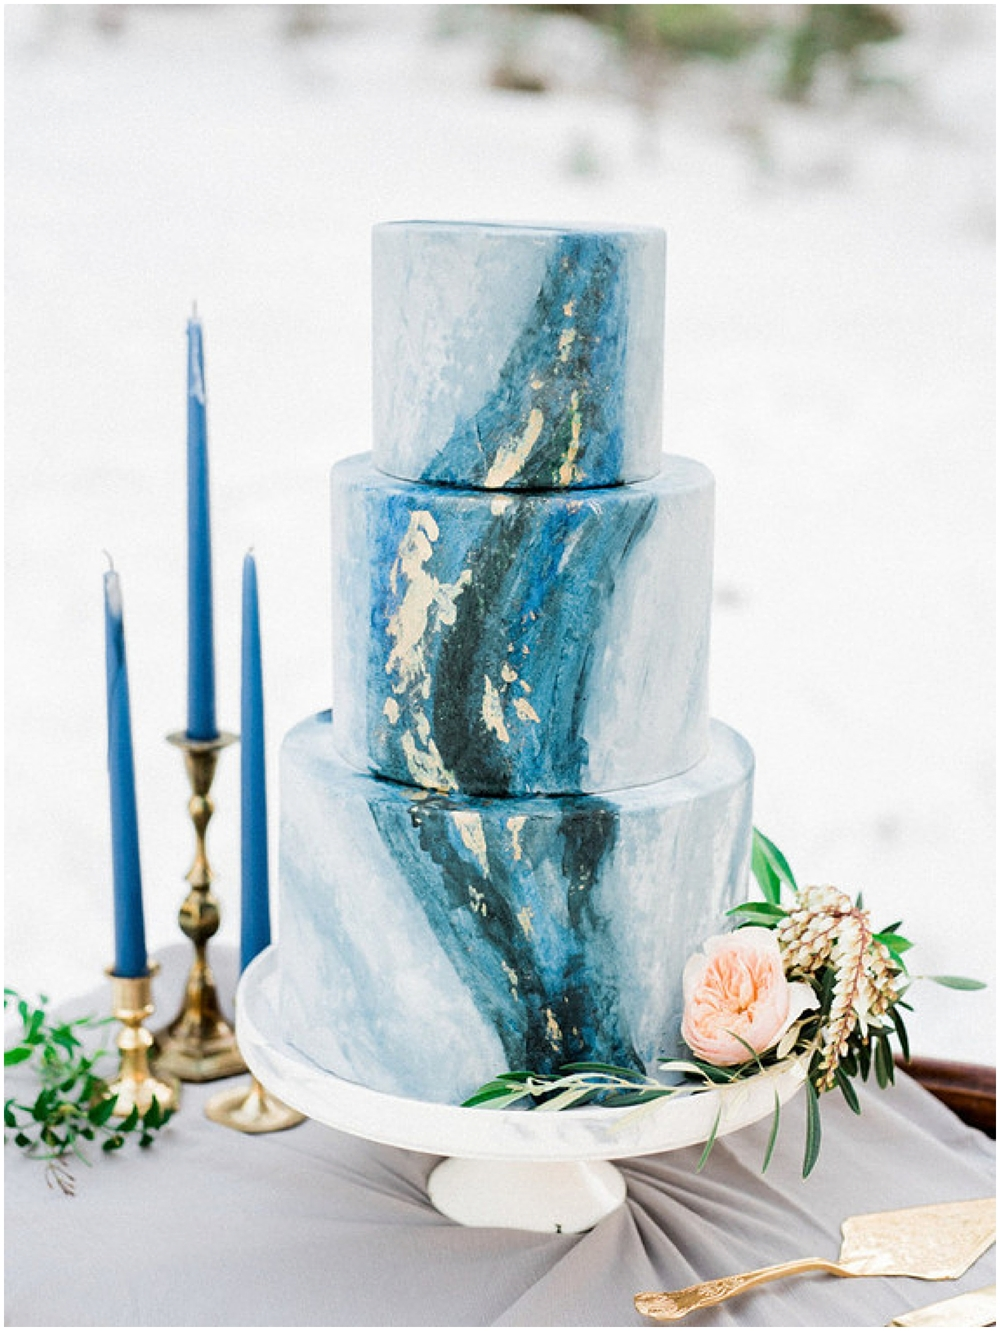 Blue Marbled Wedding Cake by  Las Vegas Custom Cakes  | Photographed by  Kristen Joy Photography  | As seen on 1 00 Layer Cake